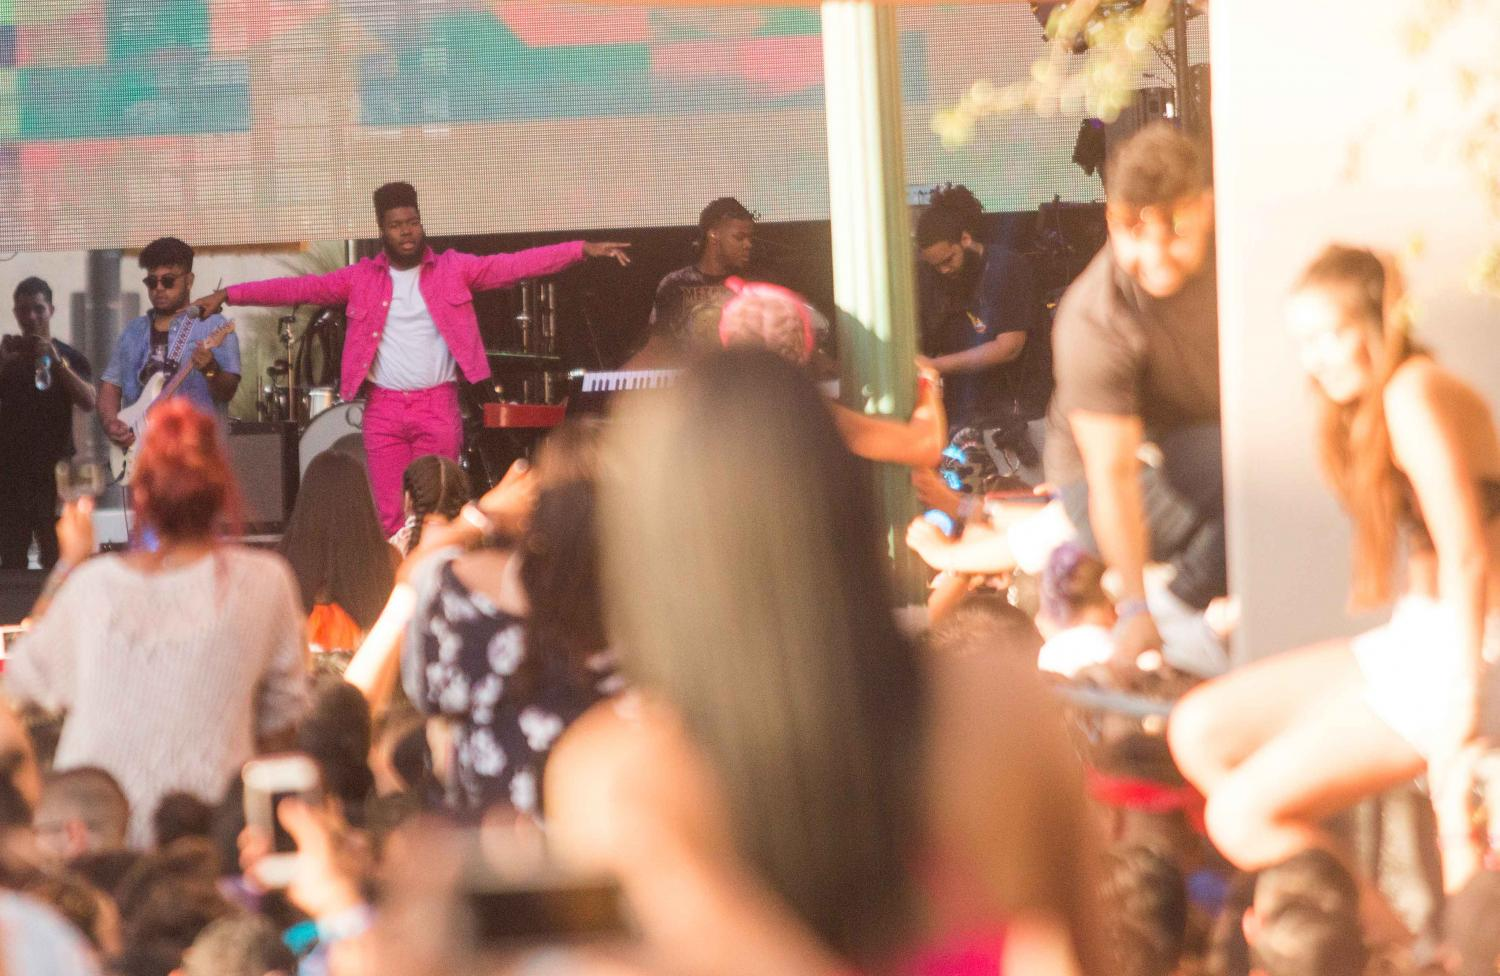 NDMF+2017+closes+with+massive+crowds+and+charged+up+performances